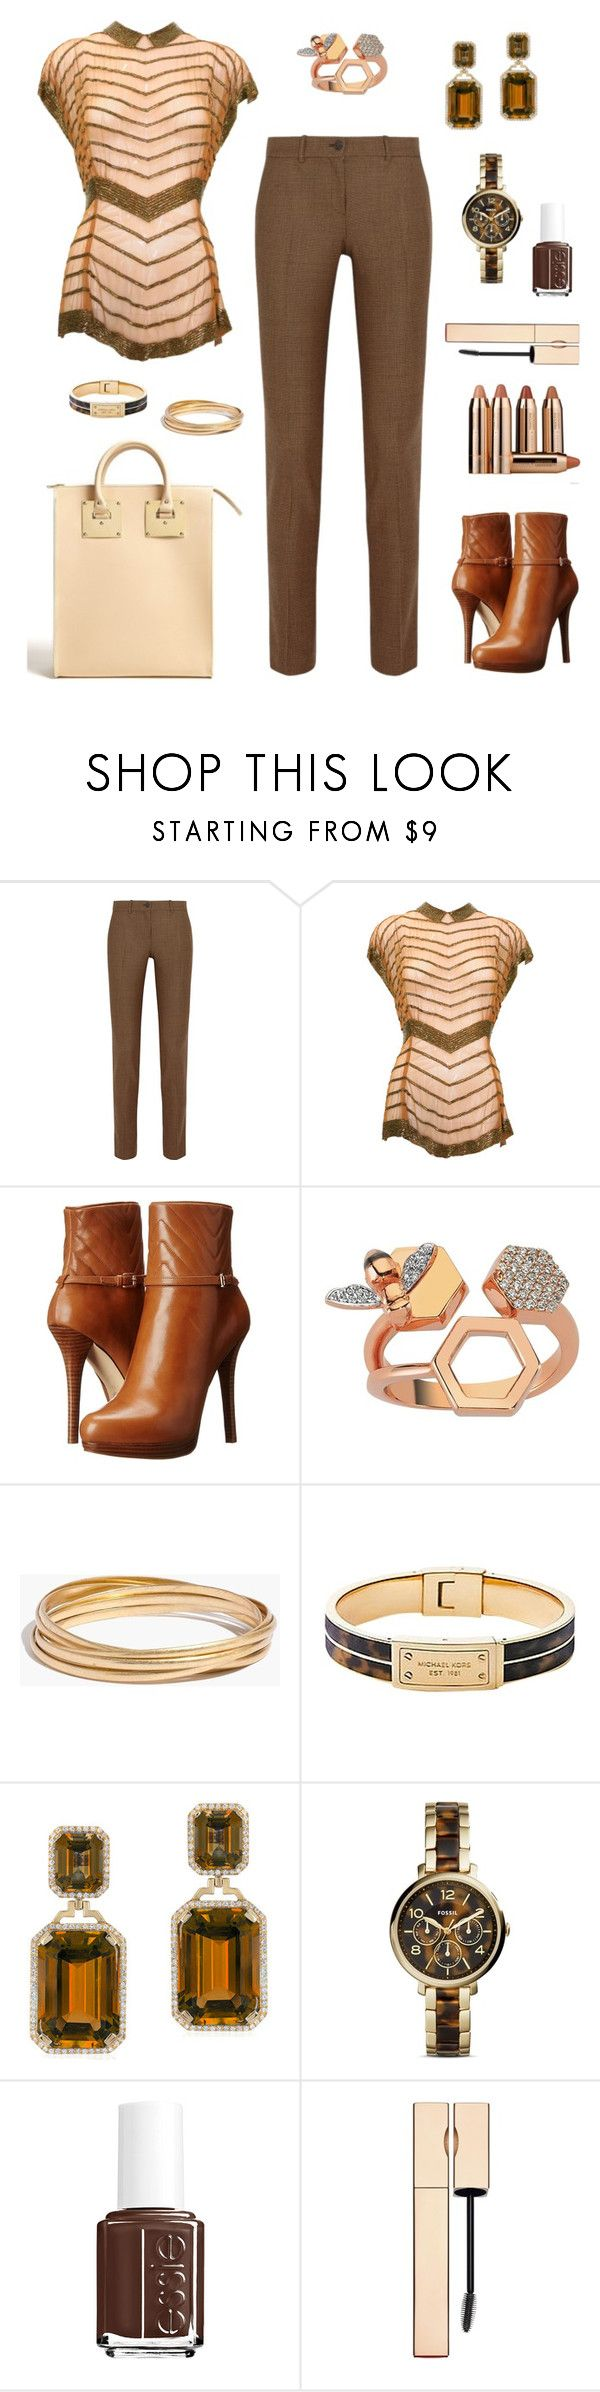 """""""Chevron Outfit Only Contest"""" by tippi-h ❤ liked on Polyvore featuring Michael Kors, MICHAEL Michael Kors, Bee Goddess, Madewell, Goshwara, FOSSIL, Sephora Collection, Essie and Clarins"""